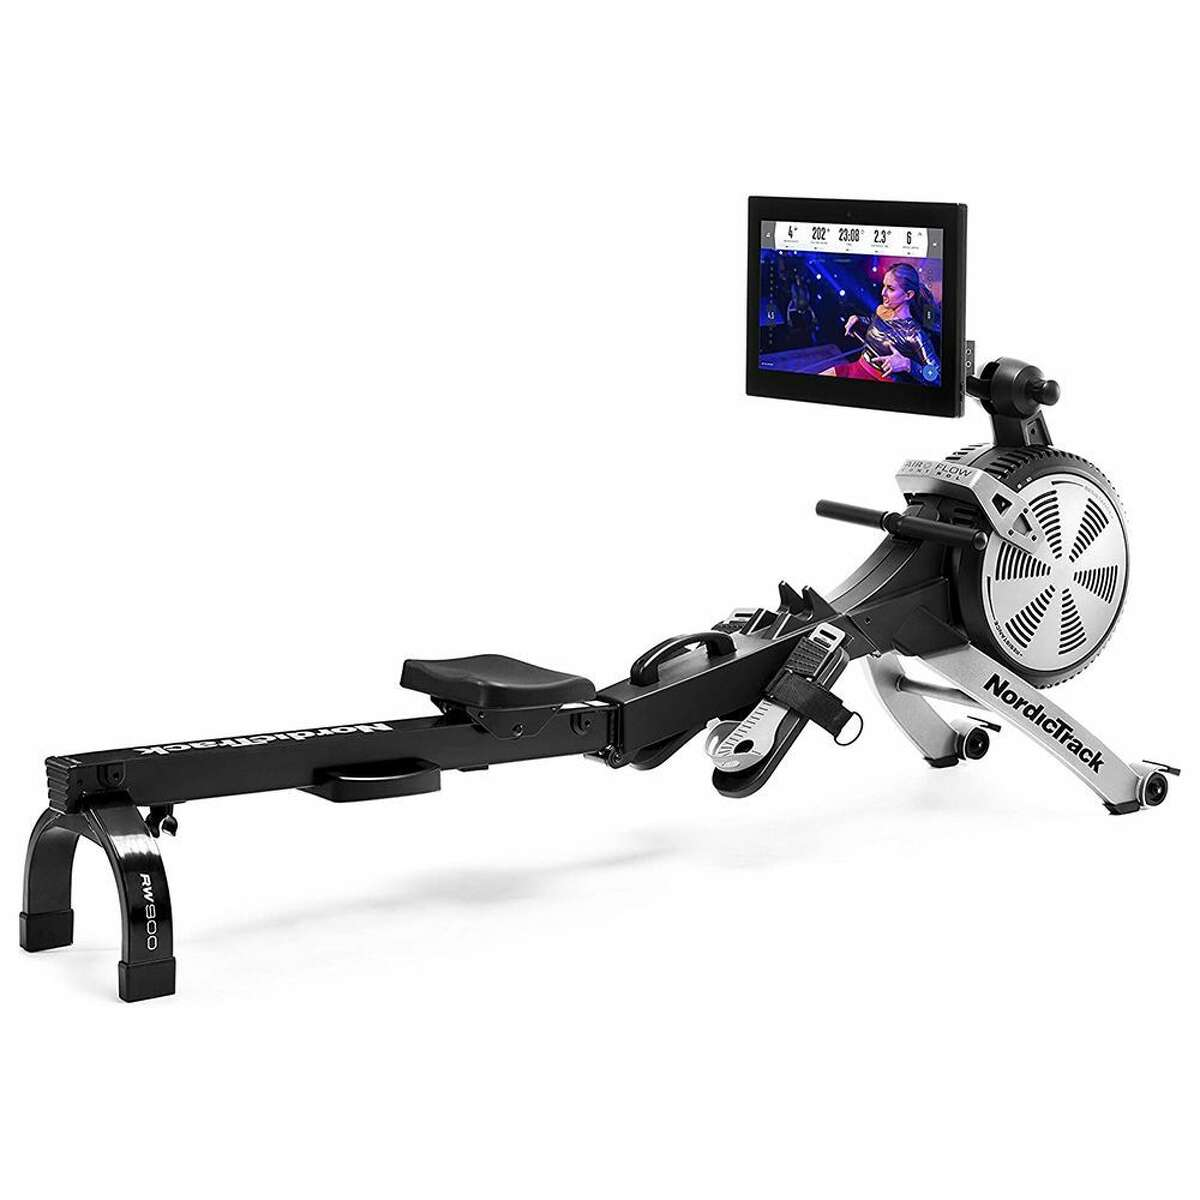 """1) RW900 Rower: $1599.00 Shop Now 4.1 out of 5 stars300+ customer reviews NordicTrack has been making exercise equipment since 1975, and when it comes to at-home rowing machines, the RW900 is the one to beat. The ergonomic, molded seat is made for comfort, and the 22-inch touchscreen display is easy to read. A 1-year iFit membership is included with your rower for personalized training that aligns with 26 coach-controlled resistance levels built into your machine. Even as you're sweating like crazy, the RW900 works quietly. When you're done, its """"SpaceSaver"""" design allows you to fold it up for easy storage on transport wheels. NordicTrack also offers special financing. Stay on top of the 18-month payment plan, and you won't pay additional interest."""